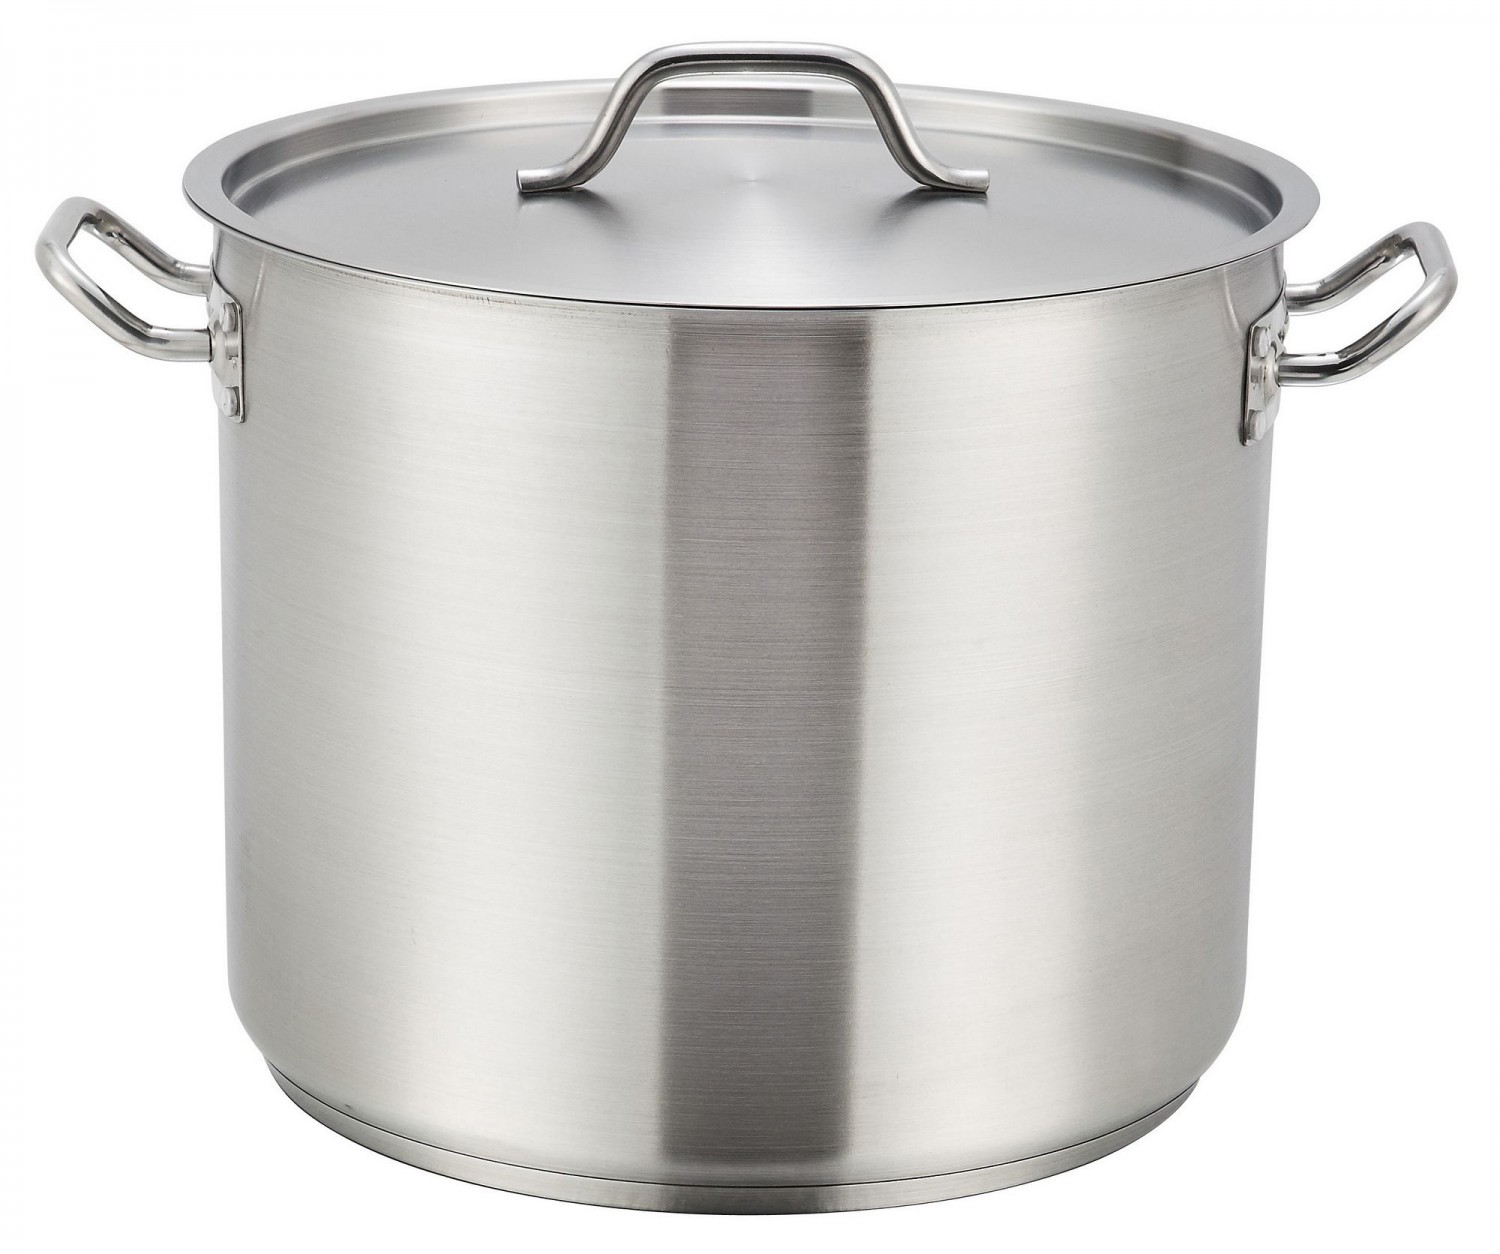 Winco SST-24 Stainless Steel Stock Pot with Cover 24 Qt.